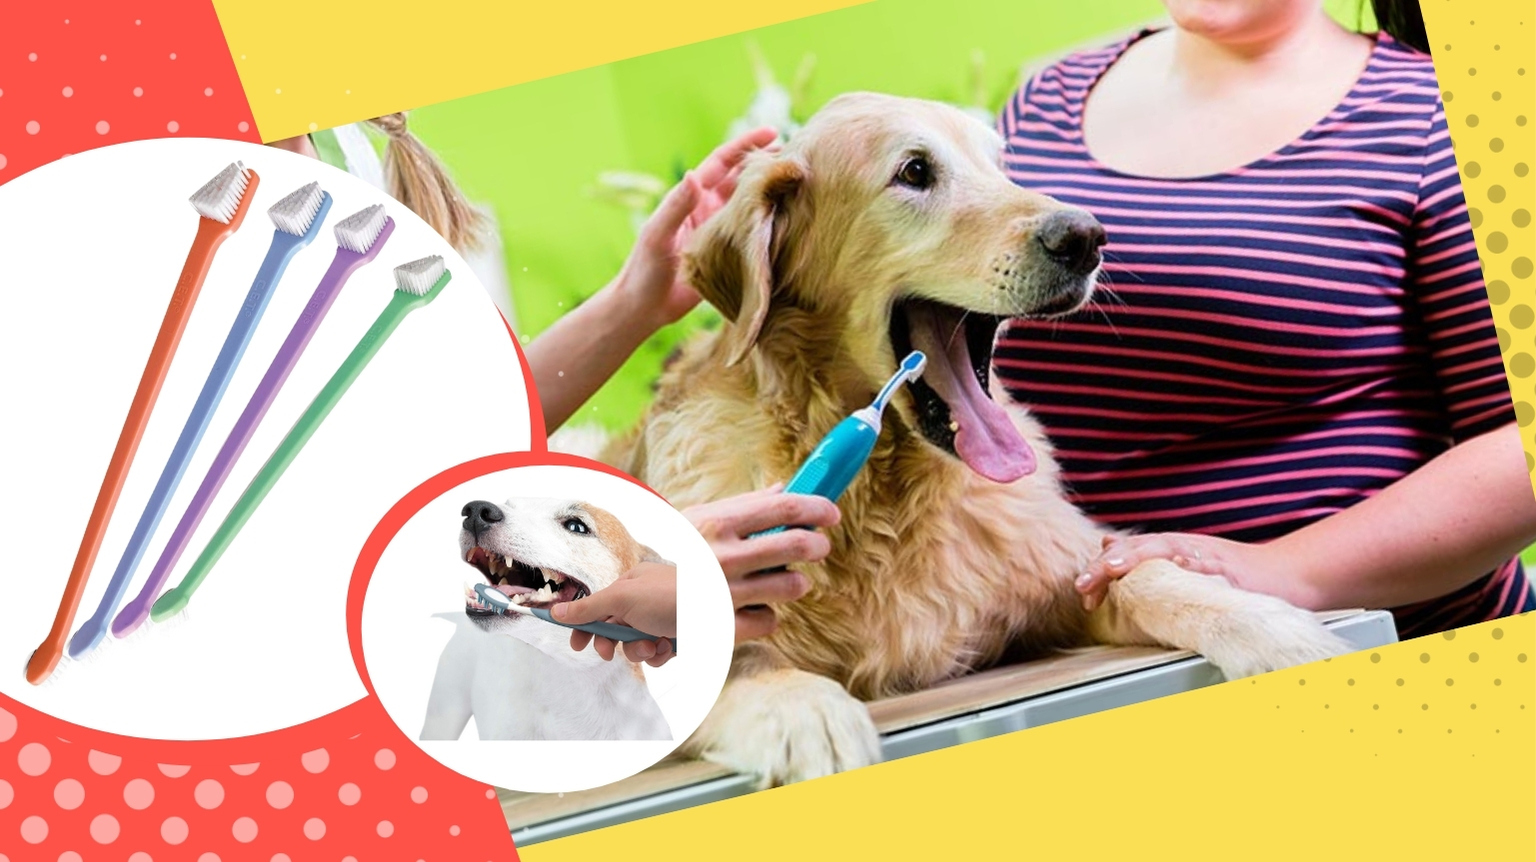 Golden Retriever using a dog toothbrush at the groomers.